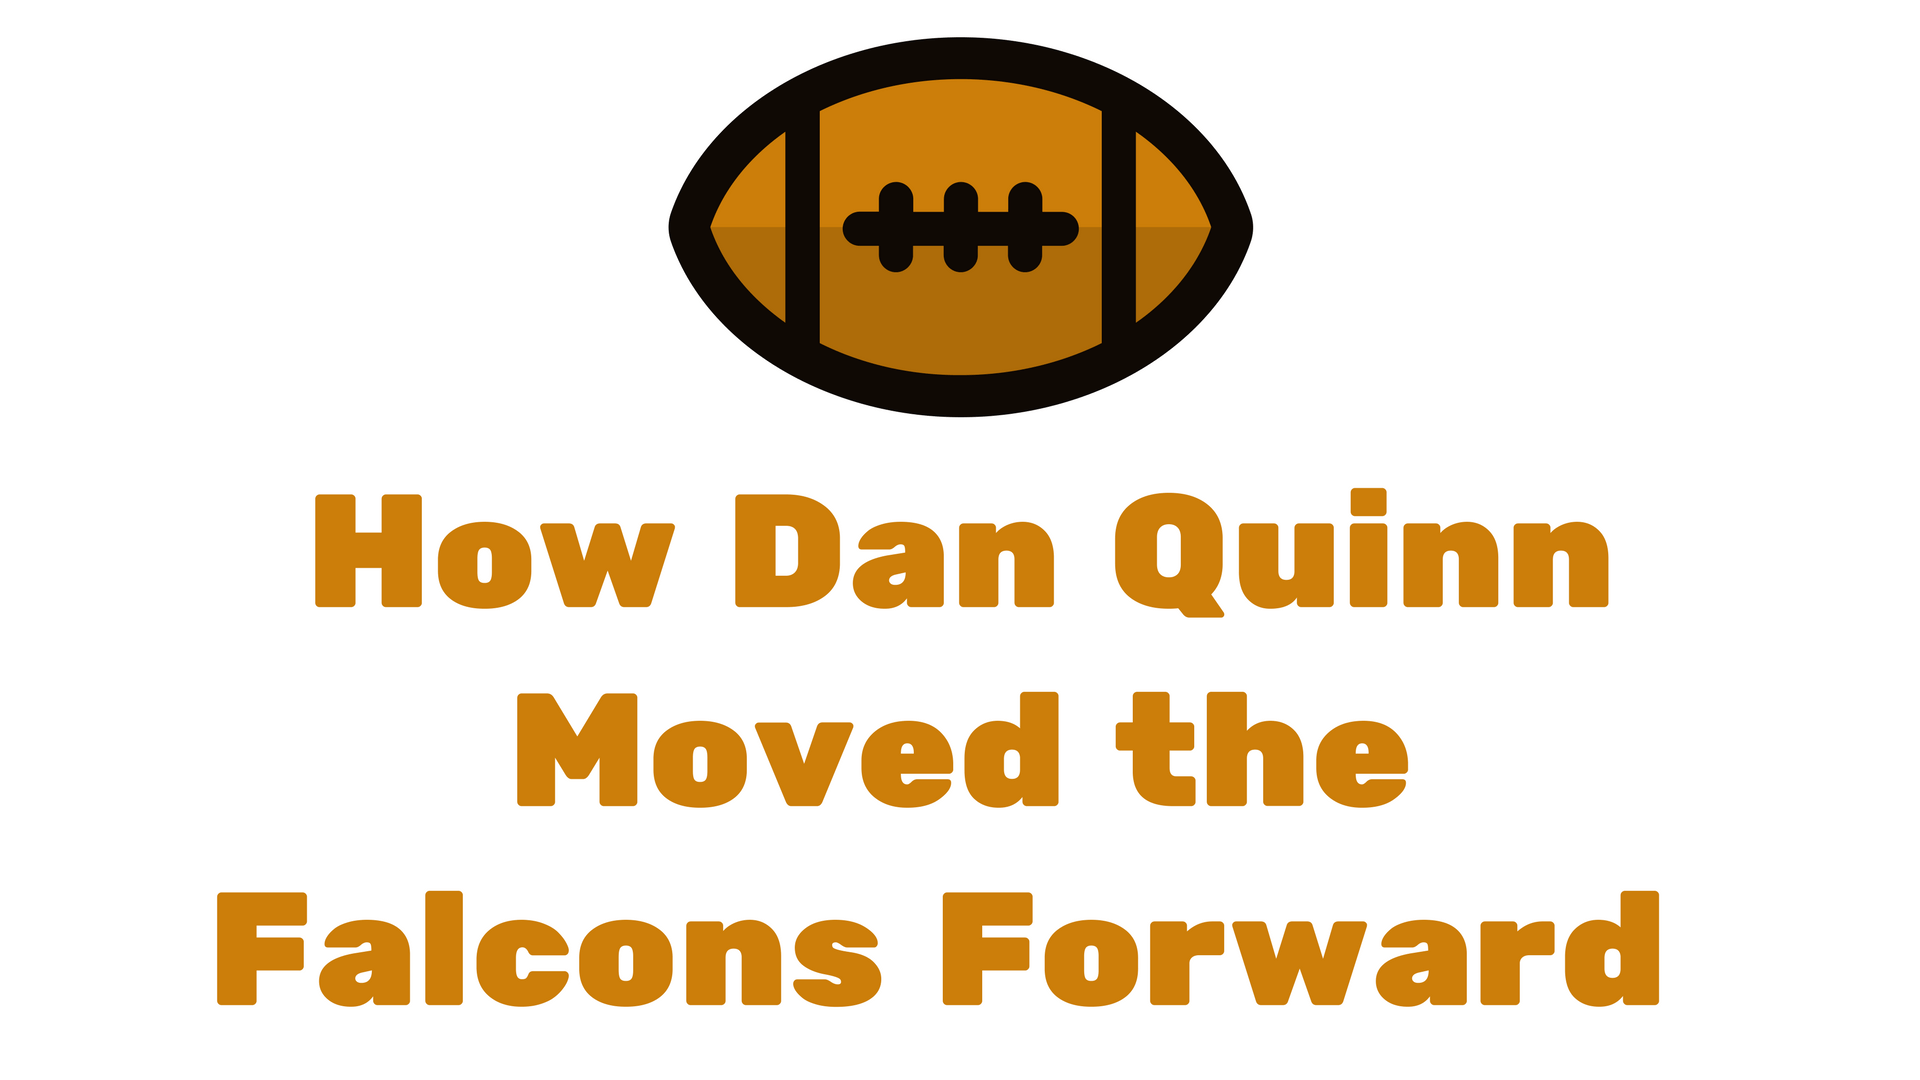 How Dan Quinn Moved the Falcons Forward